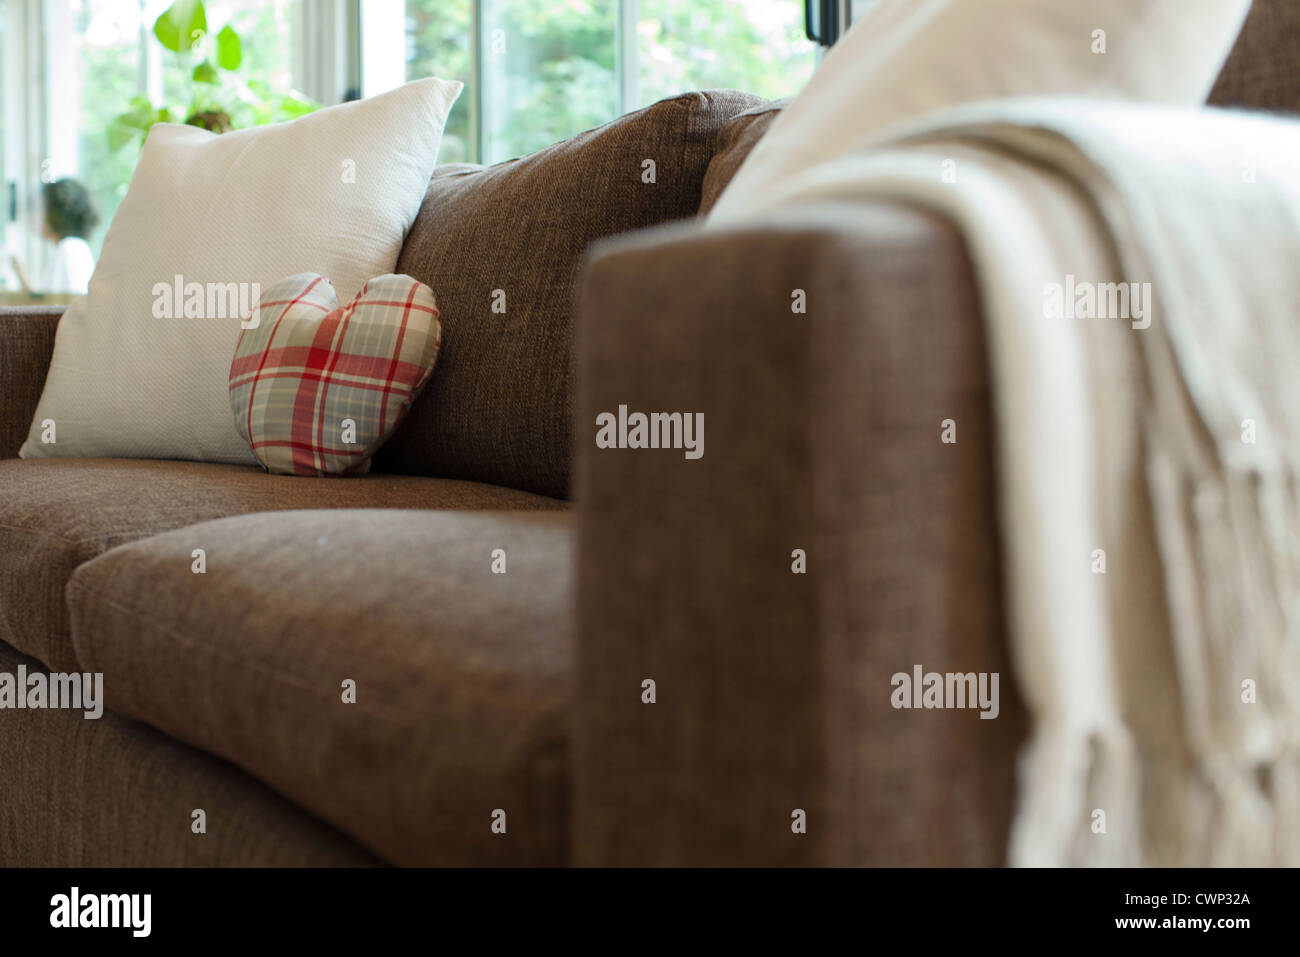 Cushions on sofa in living room - Stock Image